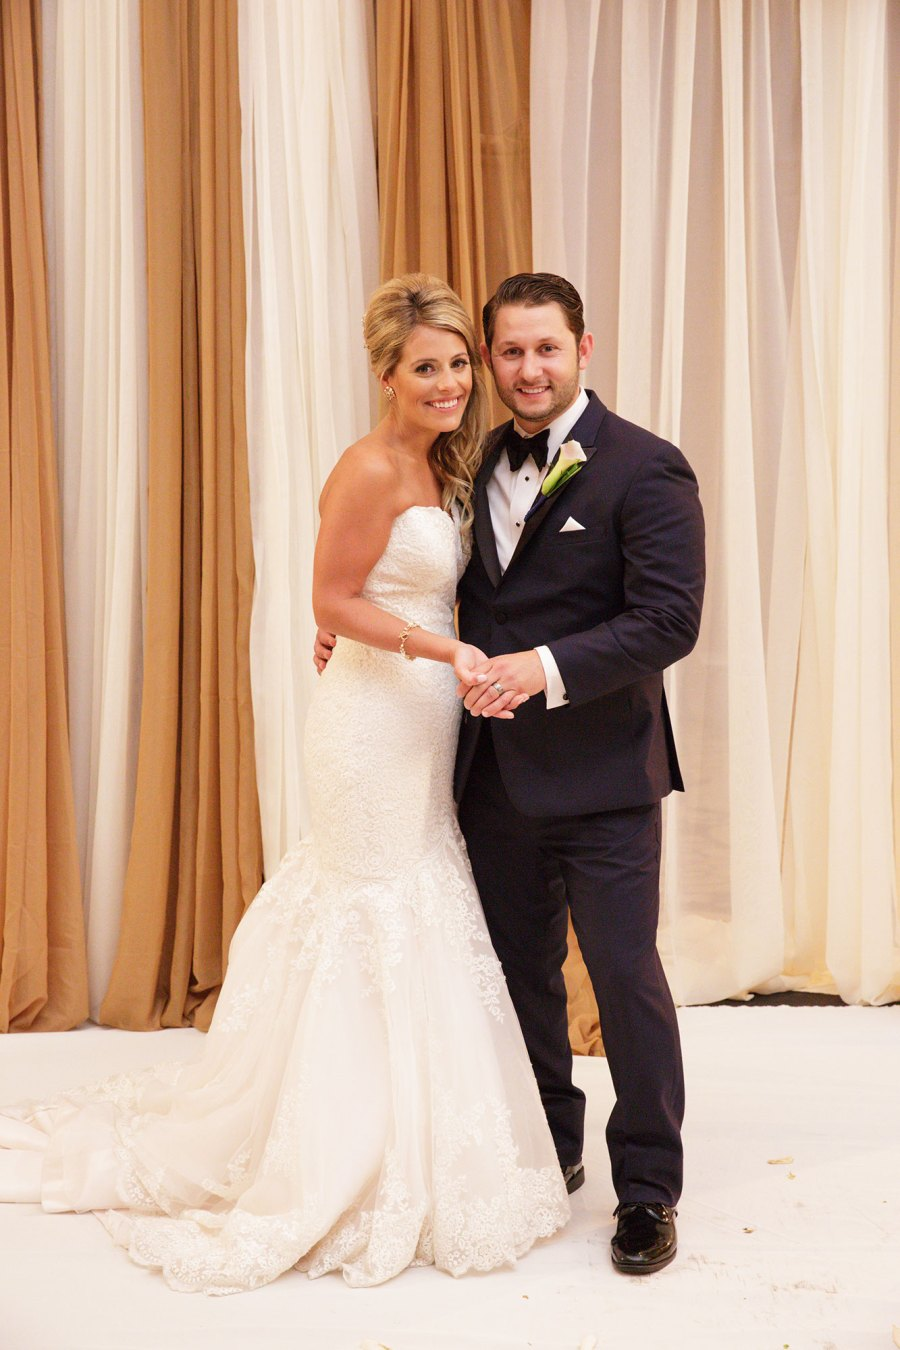 Anthony and Ashley married at first sight